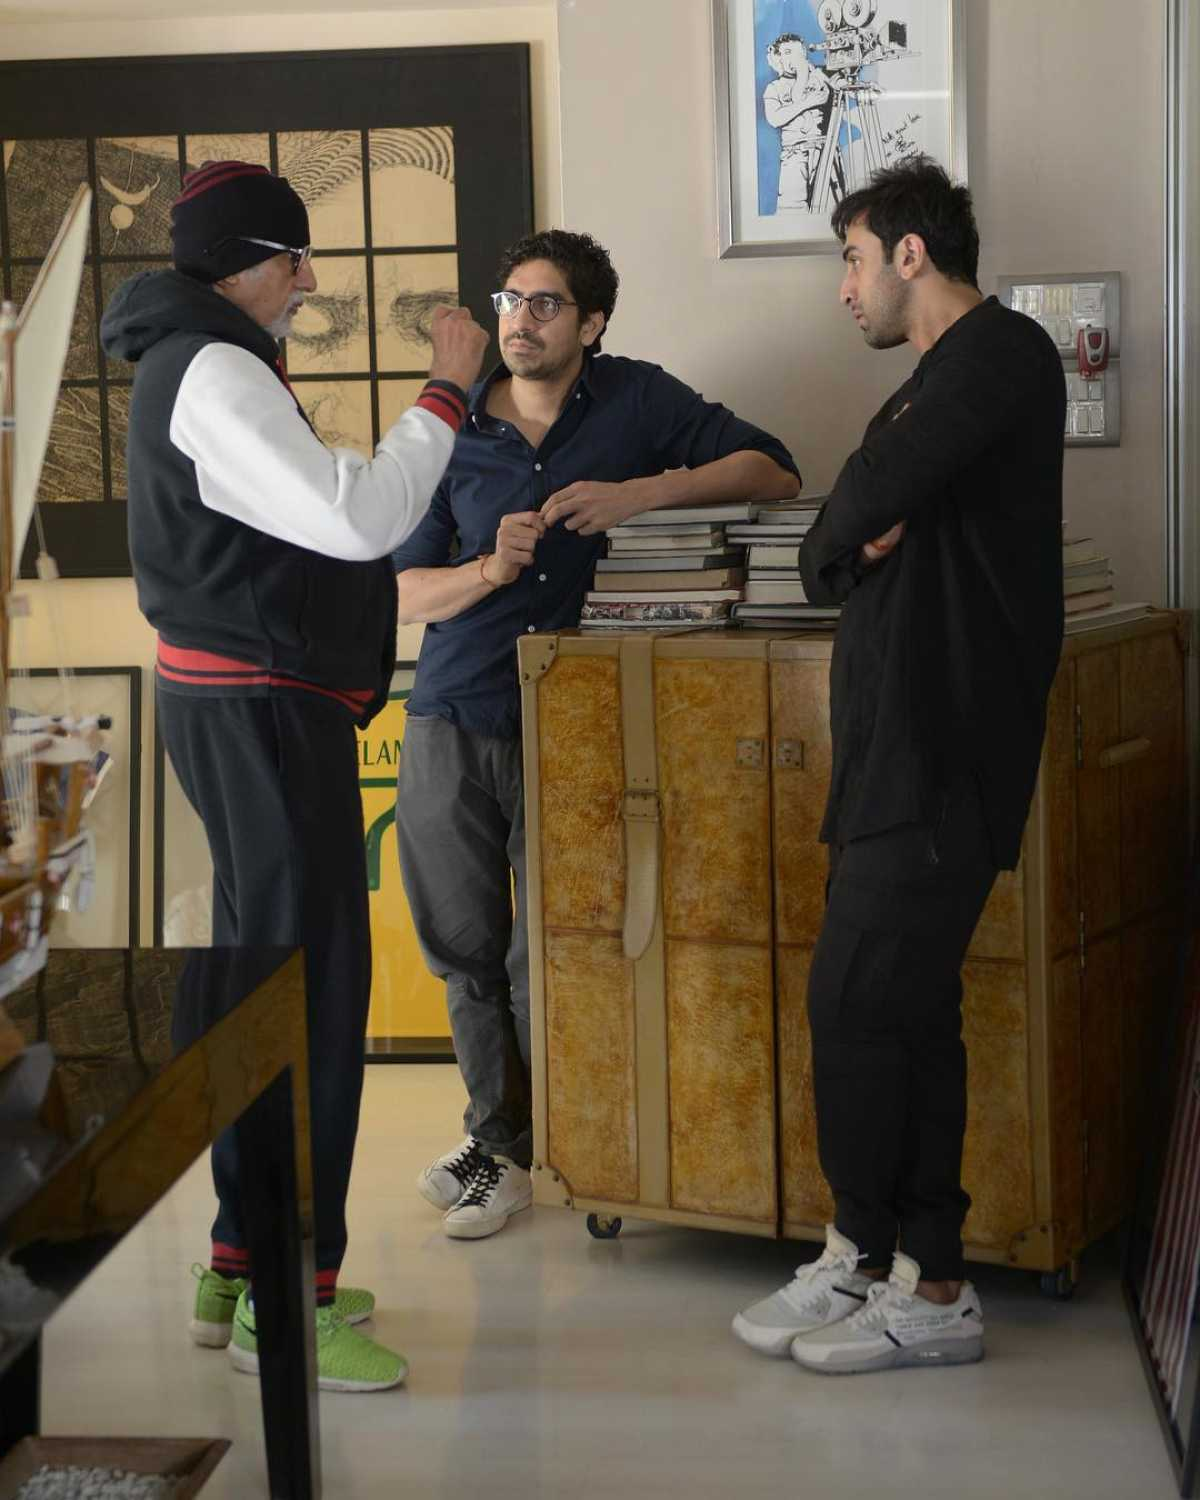 "Amitabh Bachchan, Ranbir Kapoor, Alia Bhatt and Ayan Mukerji began prep for the second schedule of Brahmastra yesterday. The trio has been cast in Ayan Mukerji's directorial venture that is produced by Karan Johar's Dharma Productions. Brahmastra is going to be a trilogy and will have Alia and Ranbir teaming up for the first time on a project. The two young superstars are extremely excited to work with Bollywood's Shahensha Amitabh Bachchan. Alia posted a picture from their script reading session yeaterday and soon after Amitabh Bachchan posted a string of selfies on his social media account. The selfies had Alia, Ranbir and Ayan in them along with Big B himself. Amitabh Bachchan made a blunder as he wrote Ranbir's name as Ranveer in the picture and captioned it , ""We prep for BRAHMASTRA .. Ranveer , Alia , Ayan .. every one else except me .. I prep to brush my teeth."" Oh no! well, this typo seems a little too much to take, isn't it?  Big B soon put another picture with the same trio and apologized for calling Ranbir as Ranveer by mistake. The actor captioned the other picture as , ""Typo .. that's Ranbir not Ranveer."" That was quite an oops moment Big B, what do you guys think?"